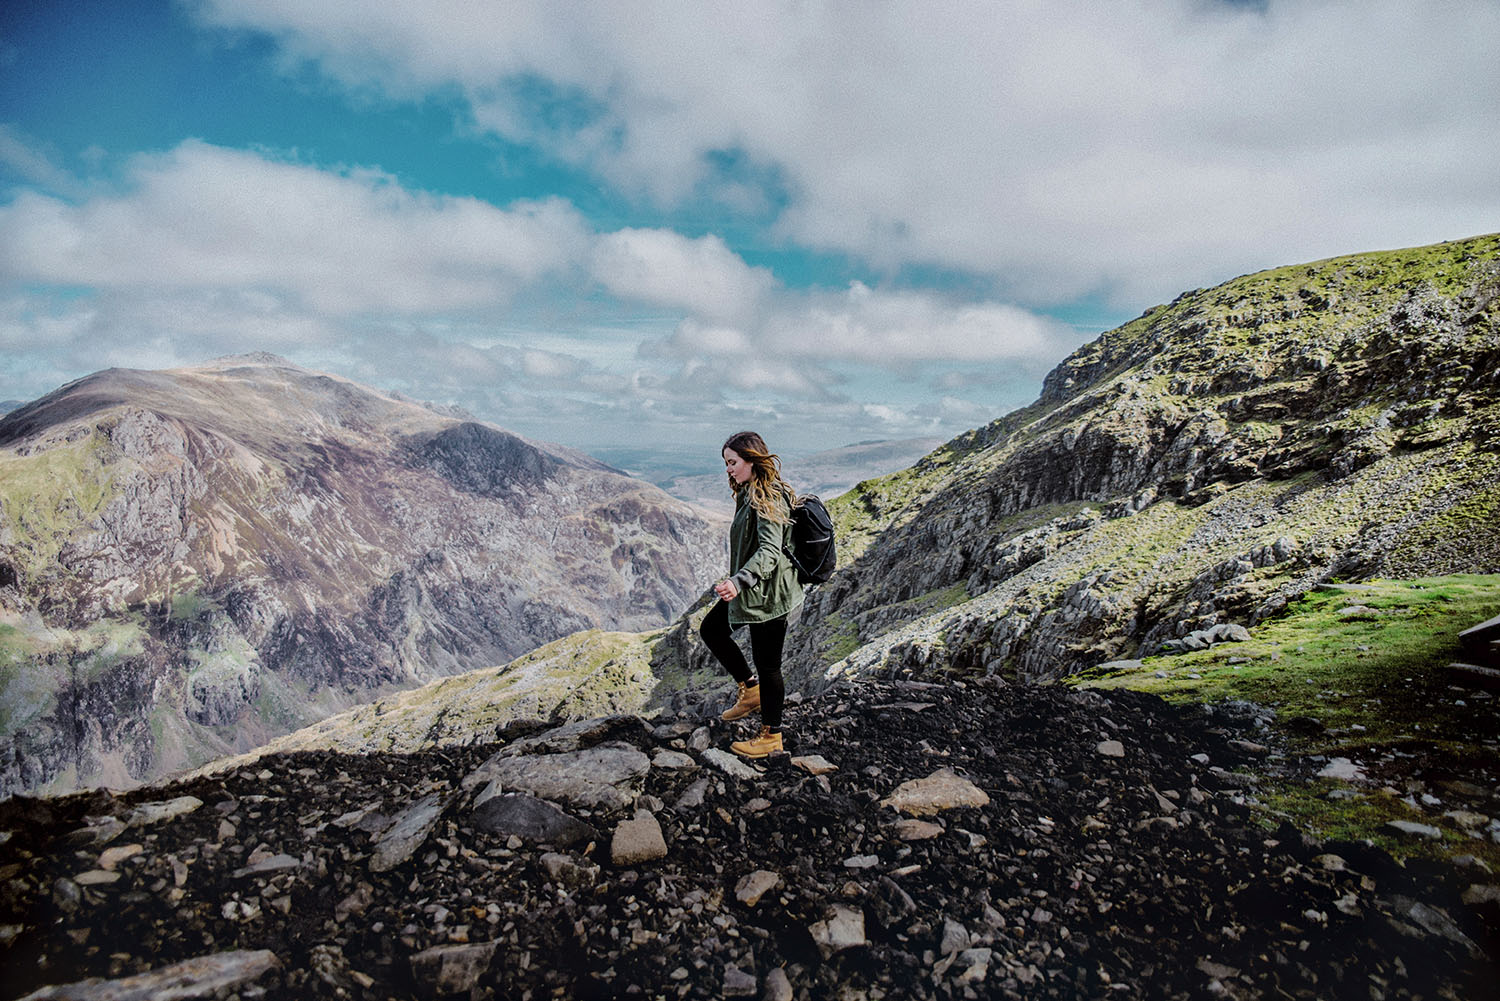 Girl with backpack walking in Clogwyn, Snowdonia National Park in Wales - The Best Place to Visit in The UK